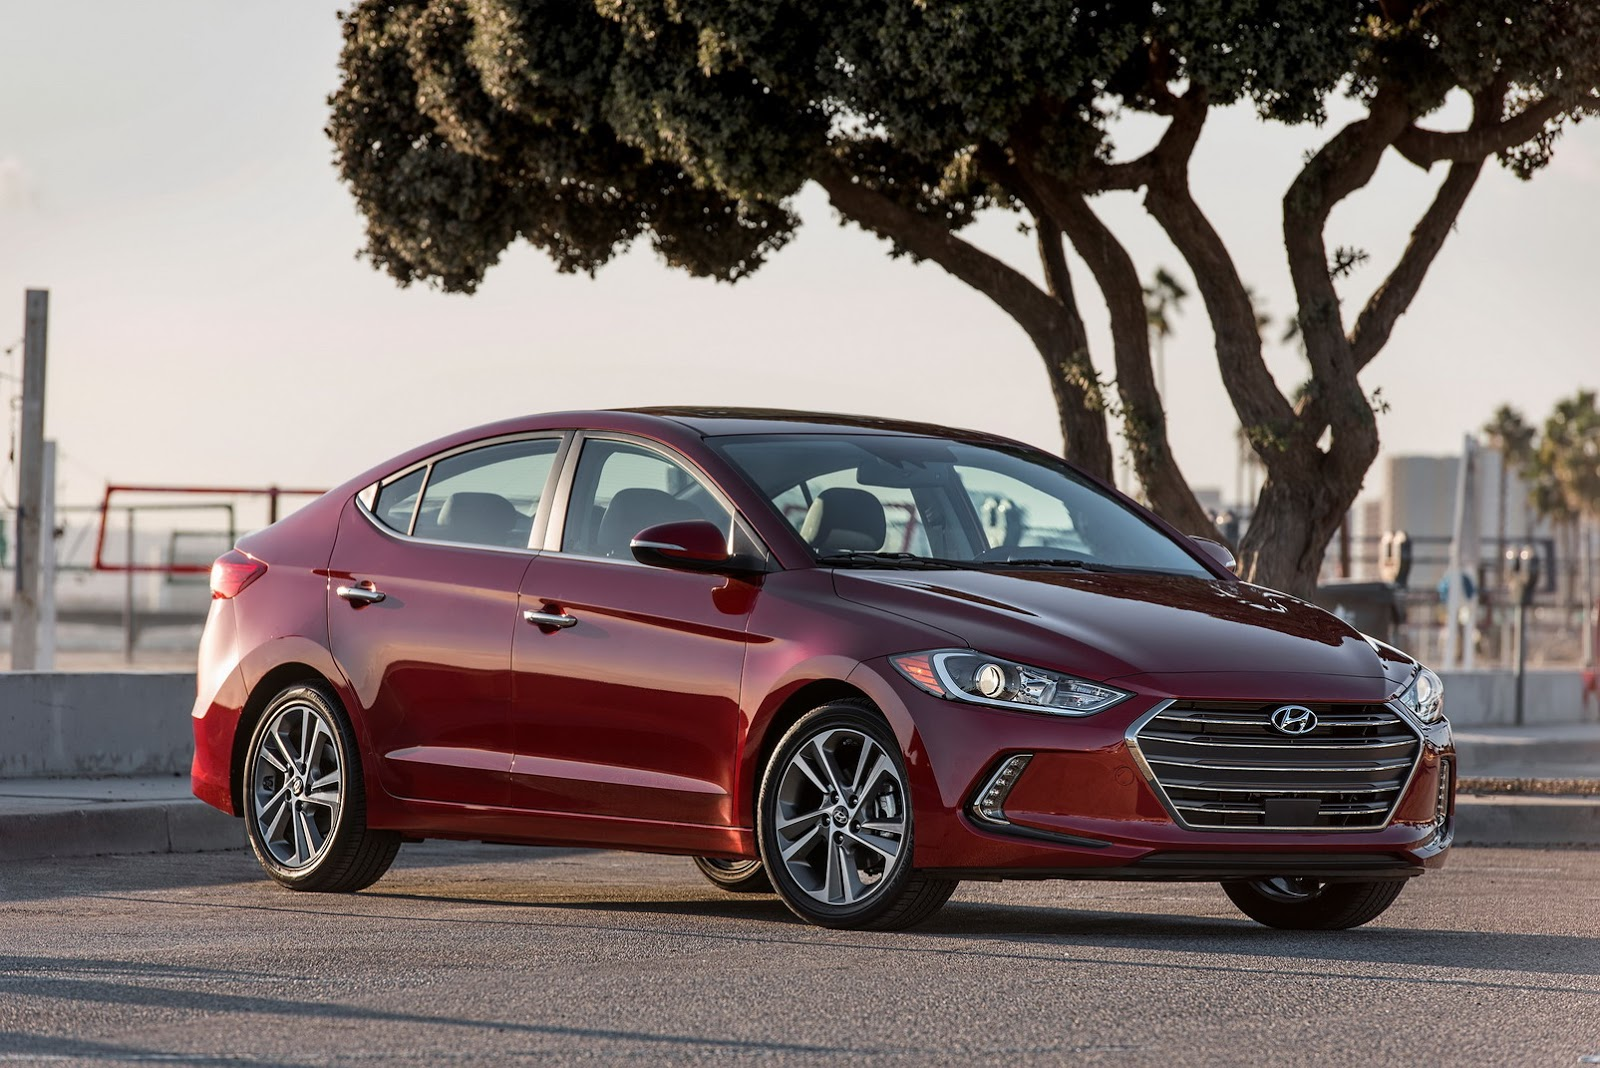 India-spec Elantra to come with two engine options